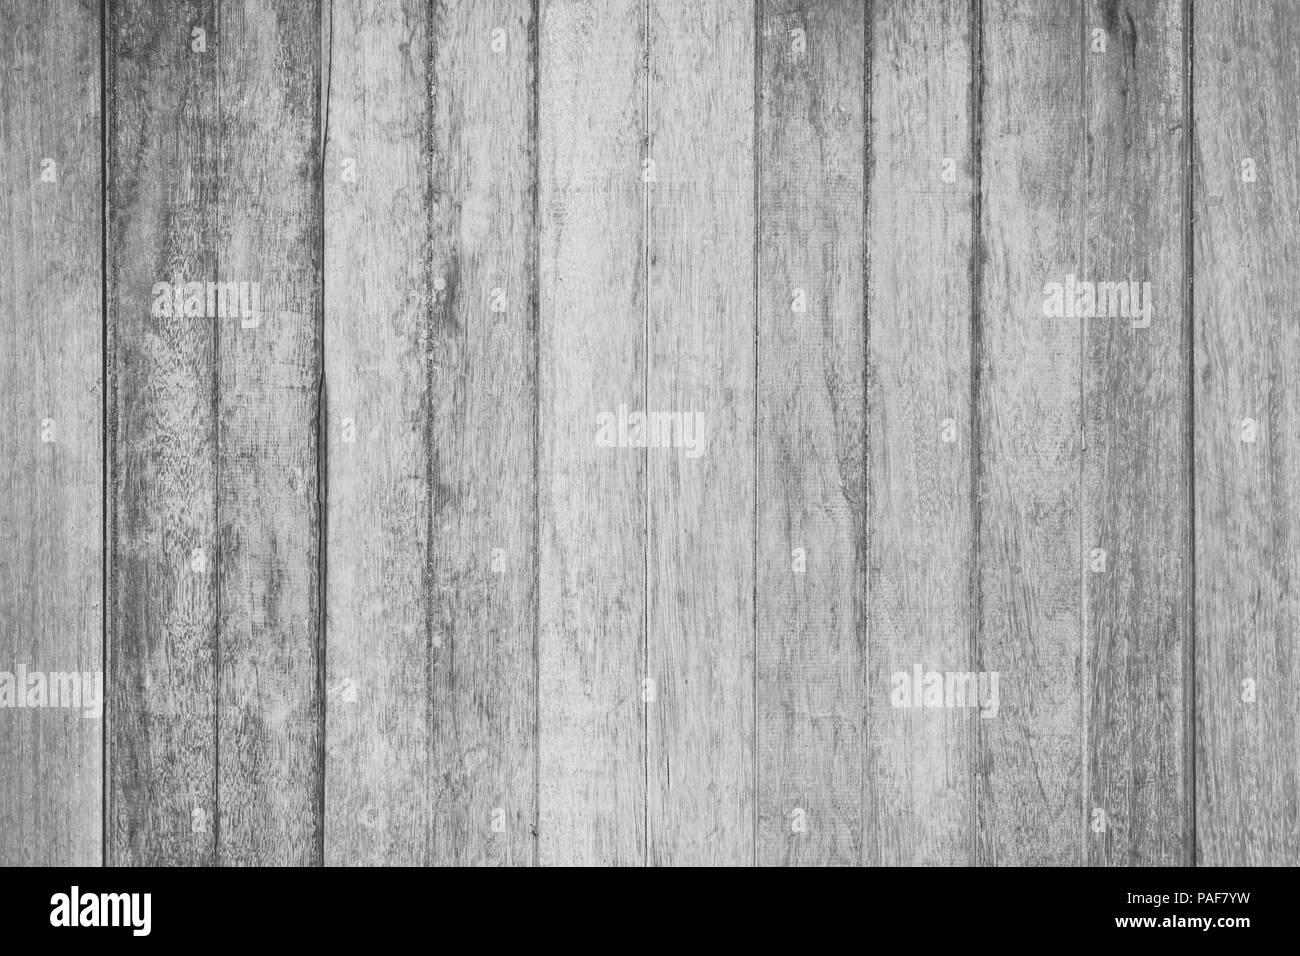 Wooden wall texture in black and white rustic background